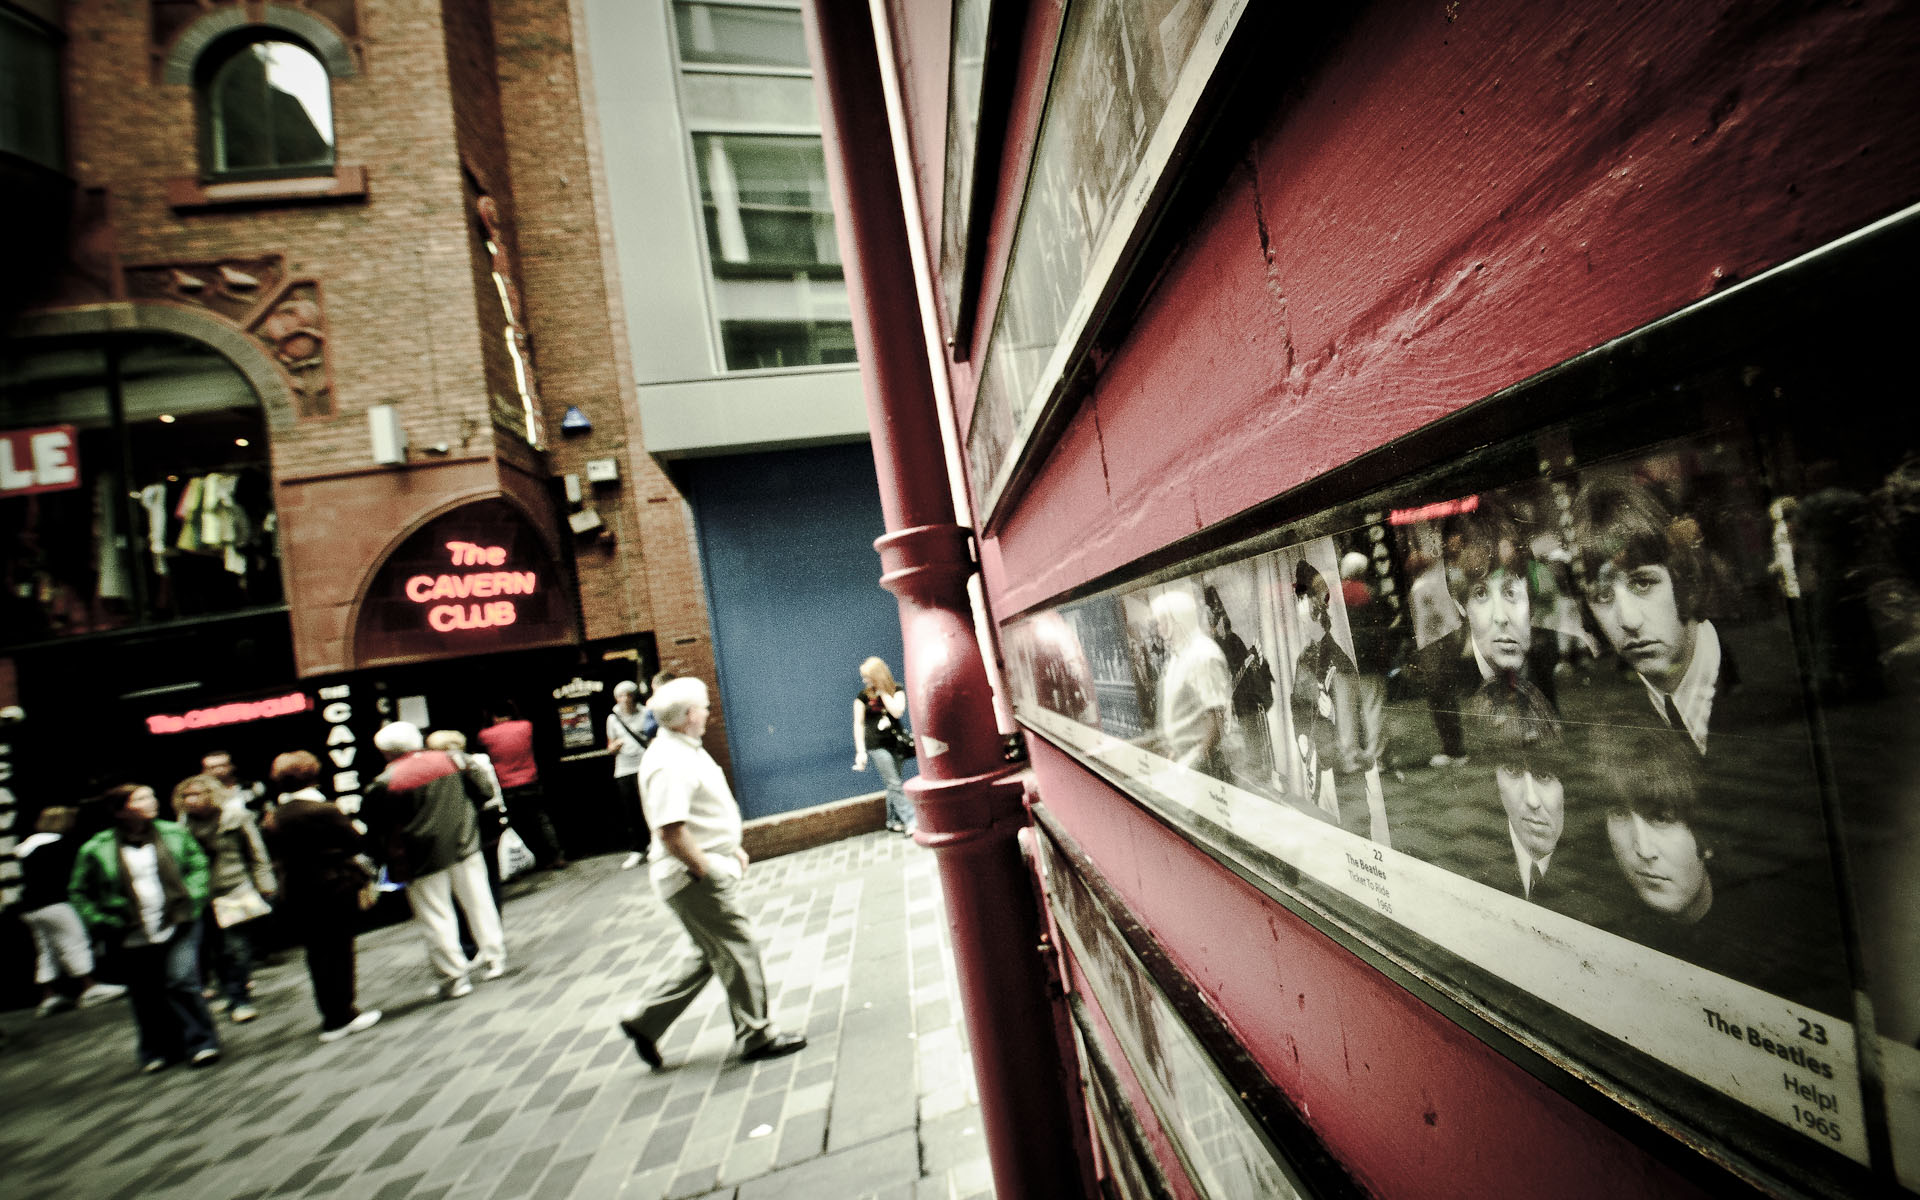 View towards Cavern club liverpool with Beatles photos in foreground